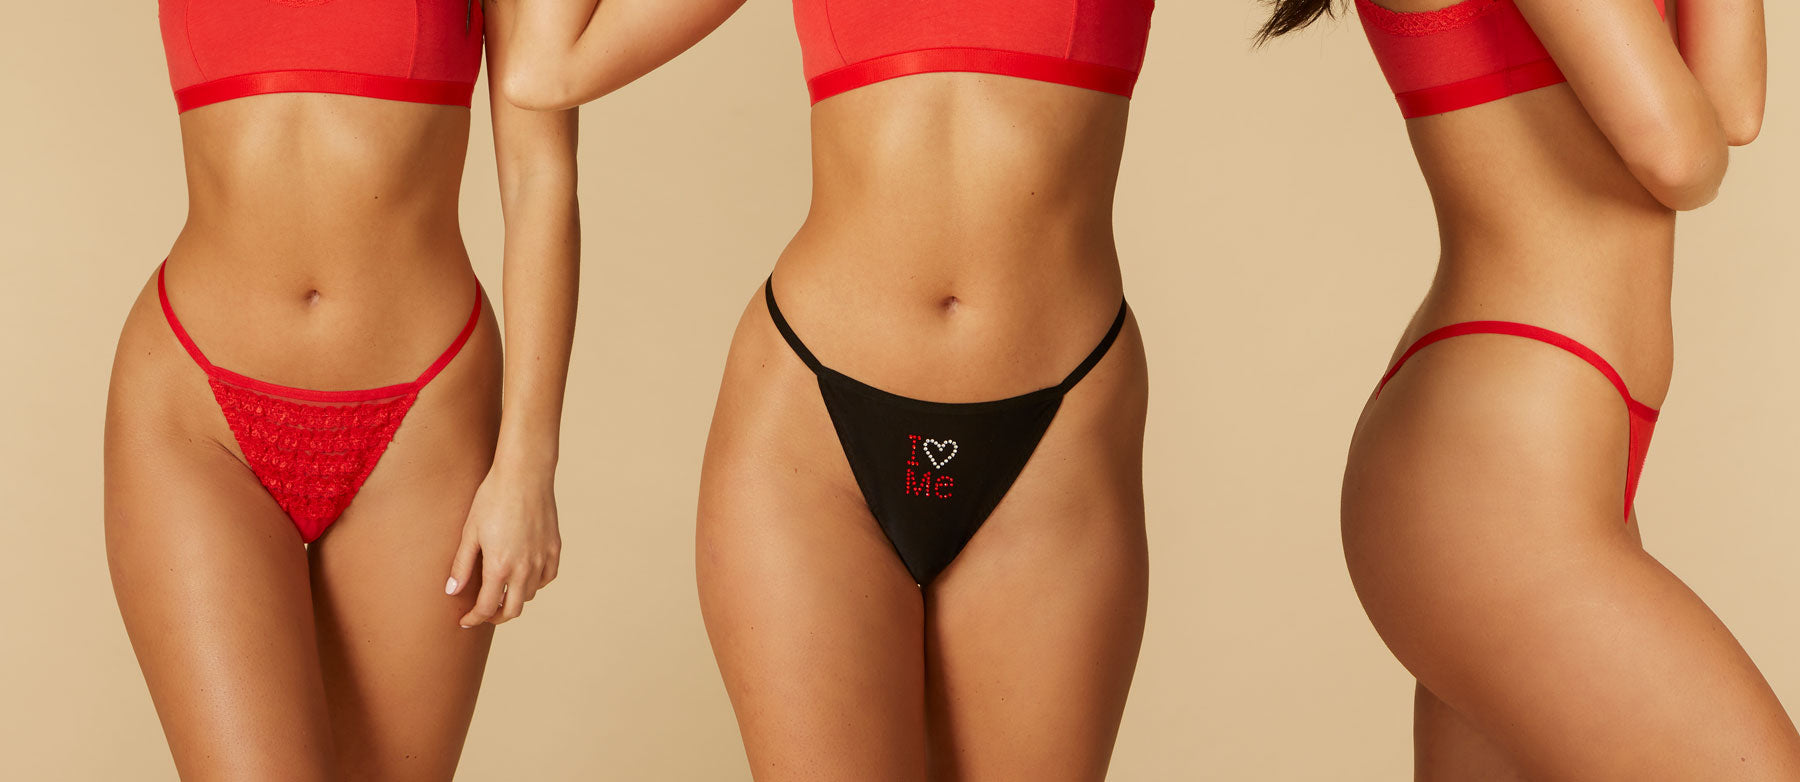 SUZE™ V-String Promotion - LoveSuze